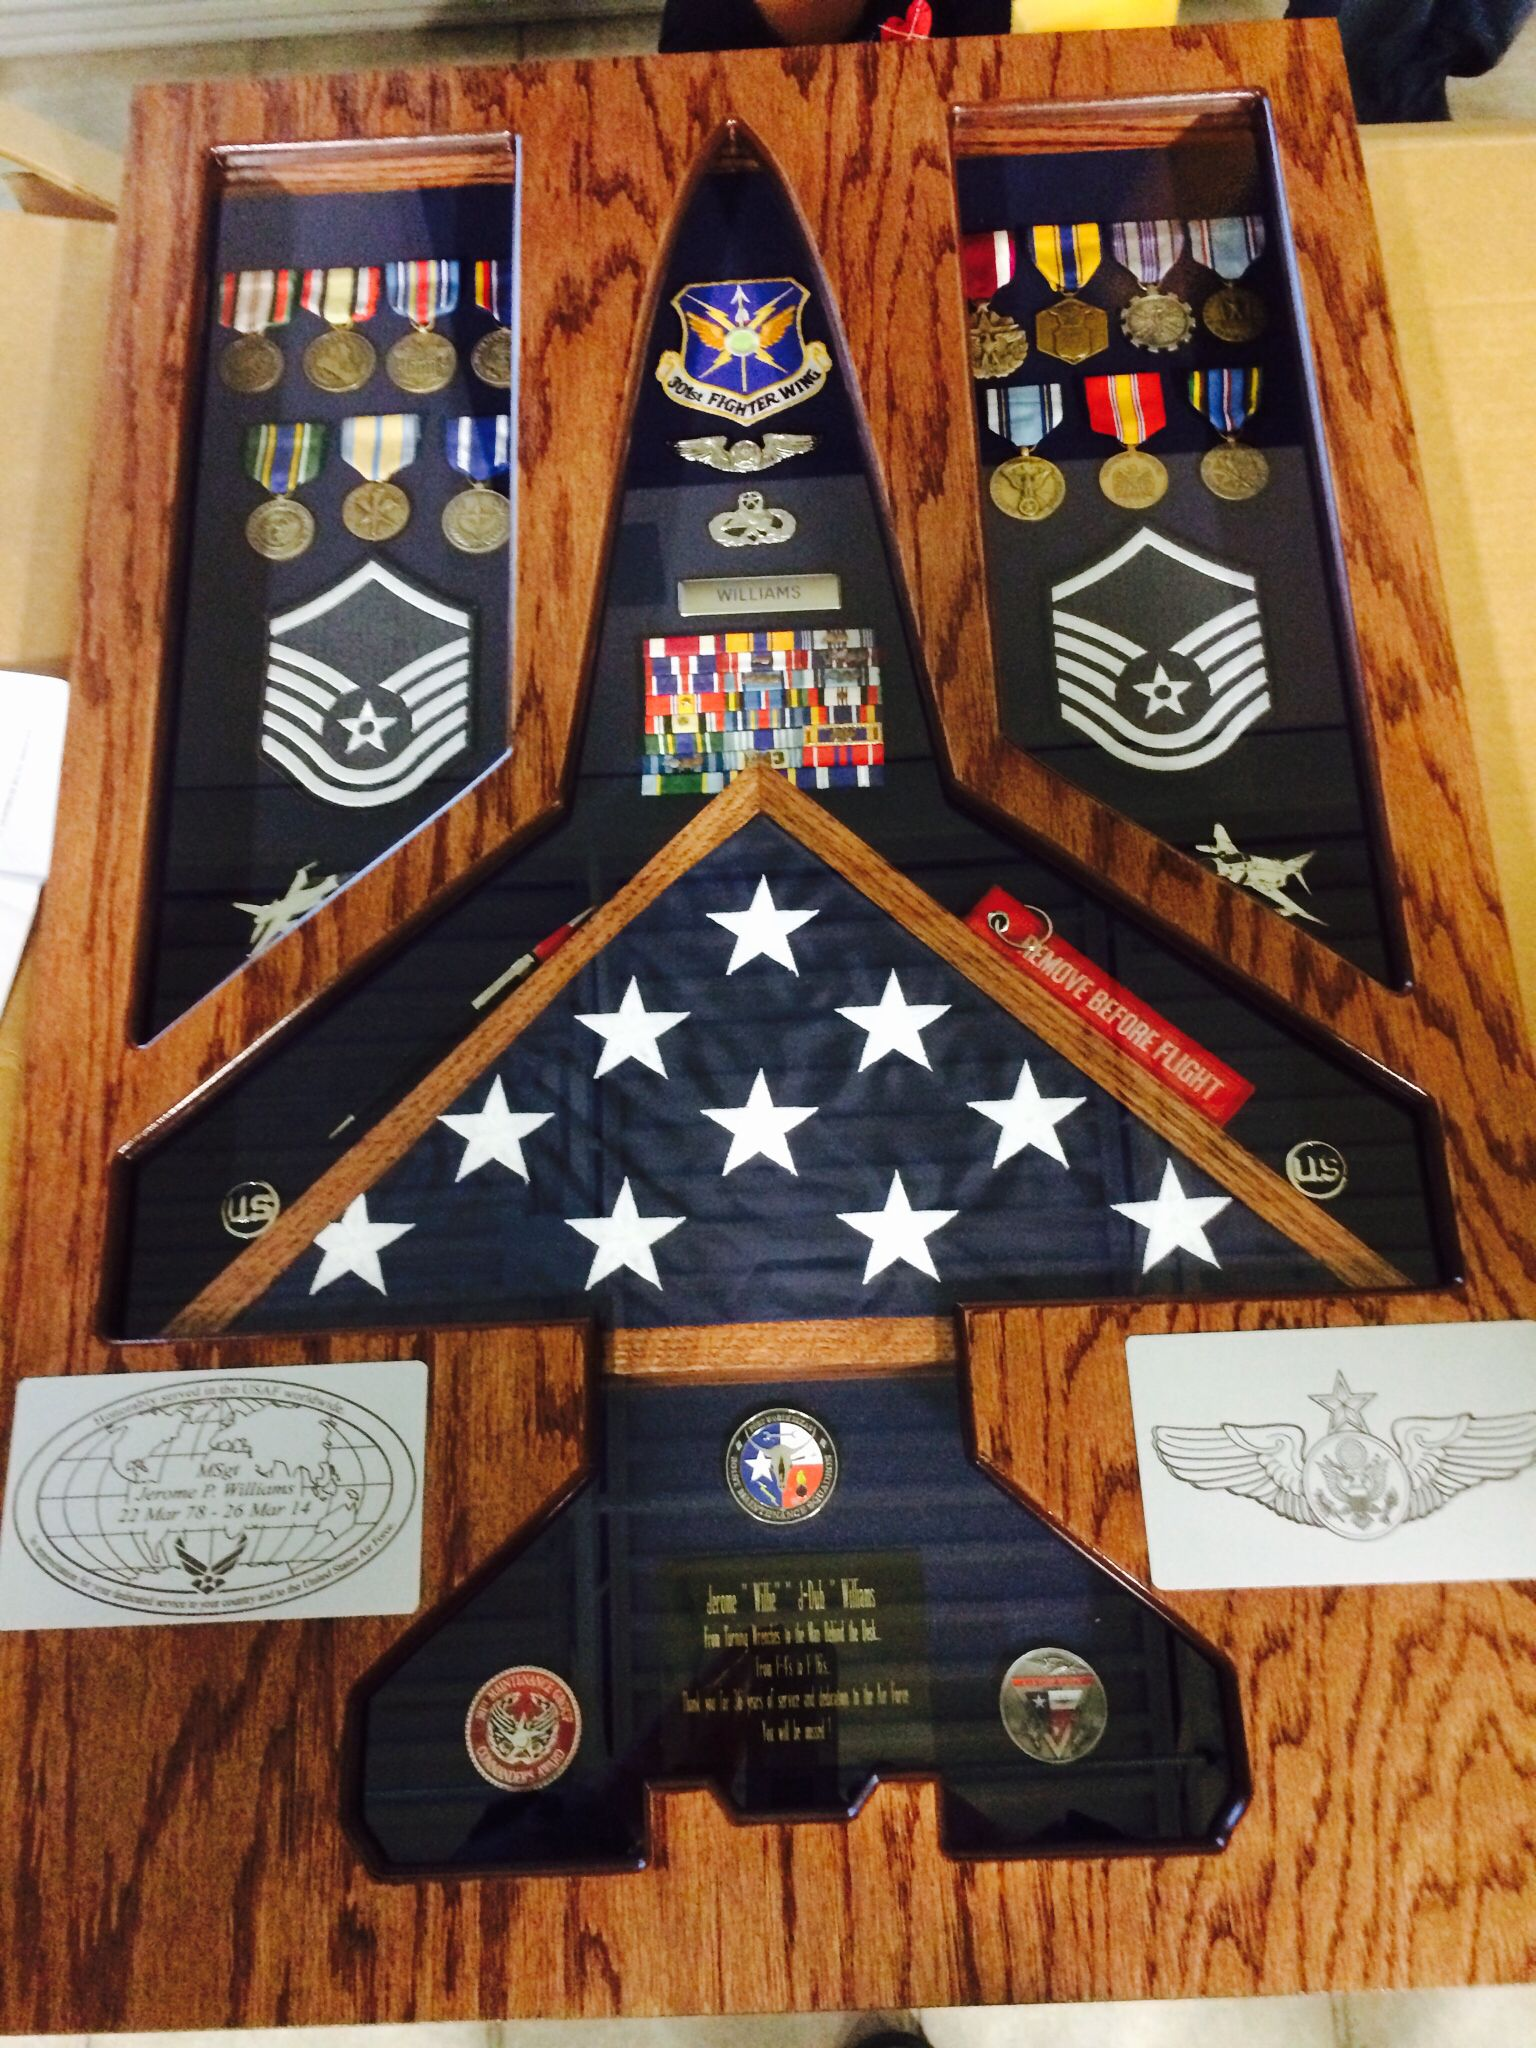 Placard Decoration Militaire Shadow Box For Retirement Would Be Cool If I Could Find A